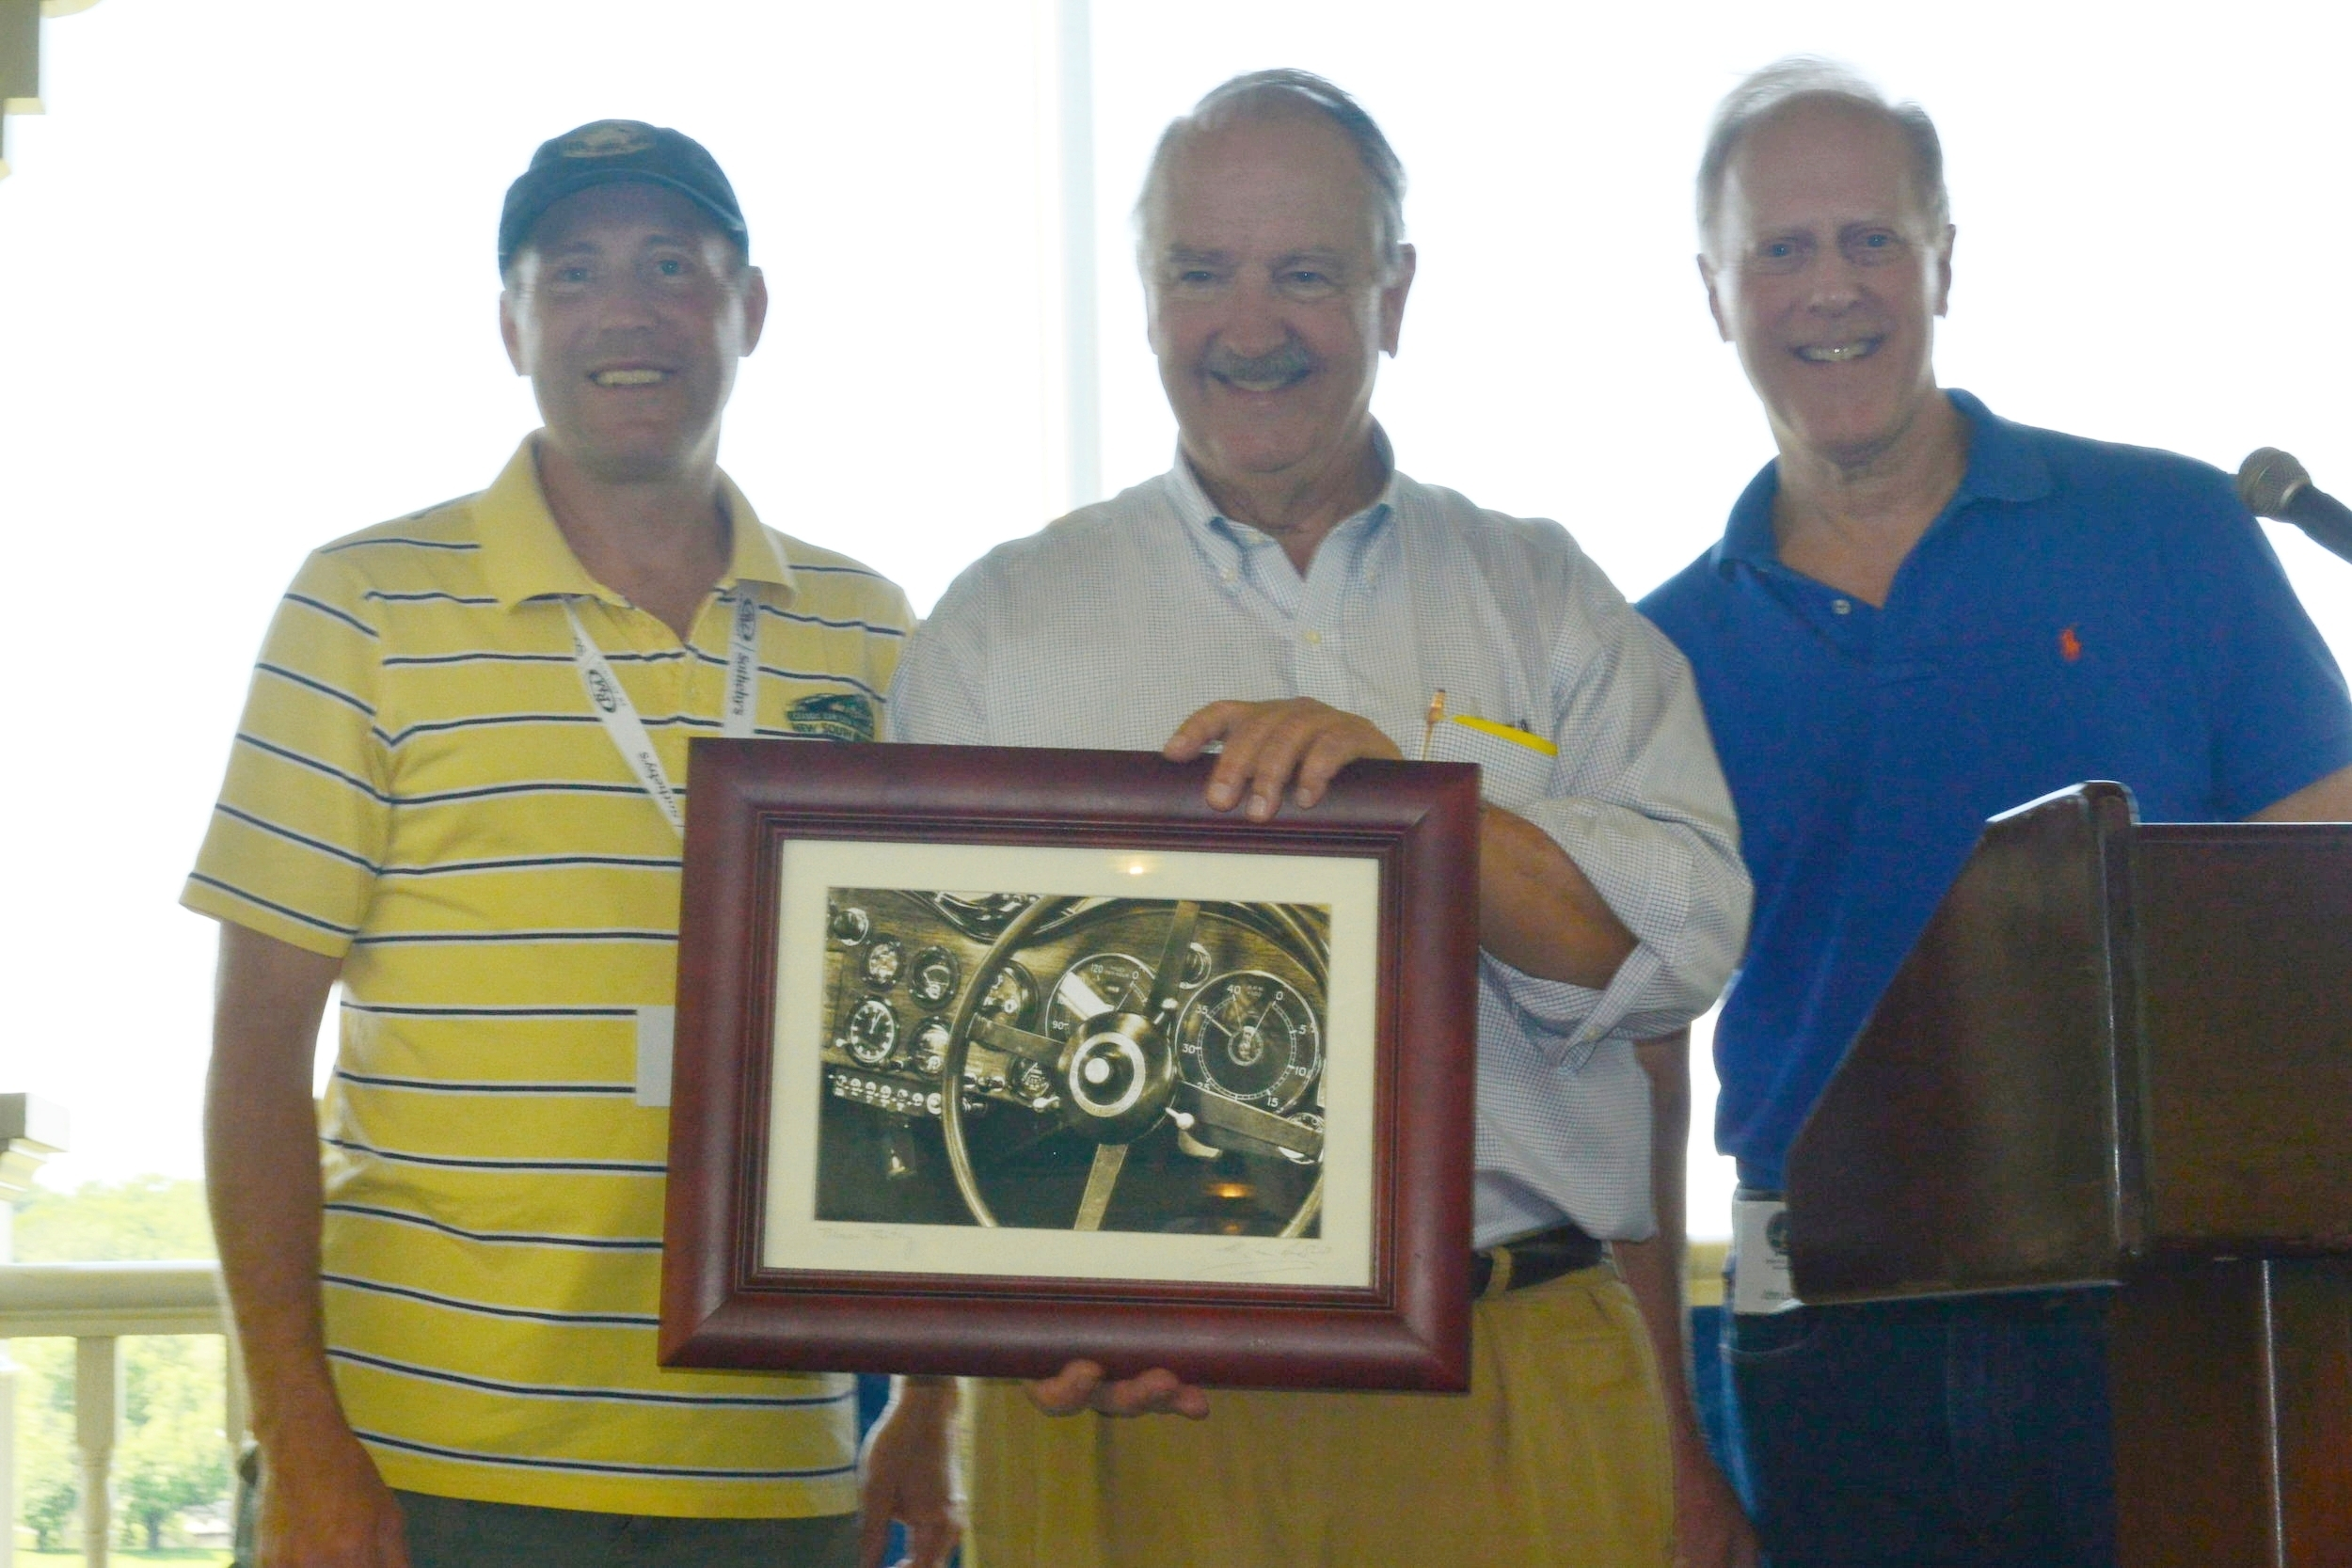 Steve Brauer accepting a gift of gratitude from the UMR and Spirit Regions. Alongside are Webster Peterson (l), organizer of the Nordic CARavan, and John Lowell (r), Spirit Region Director.